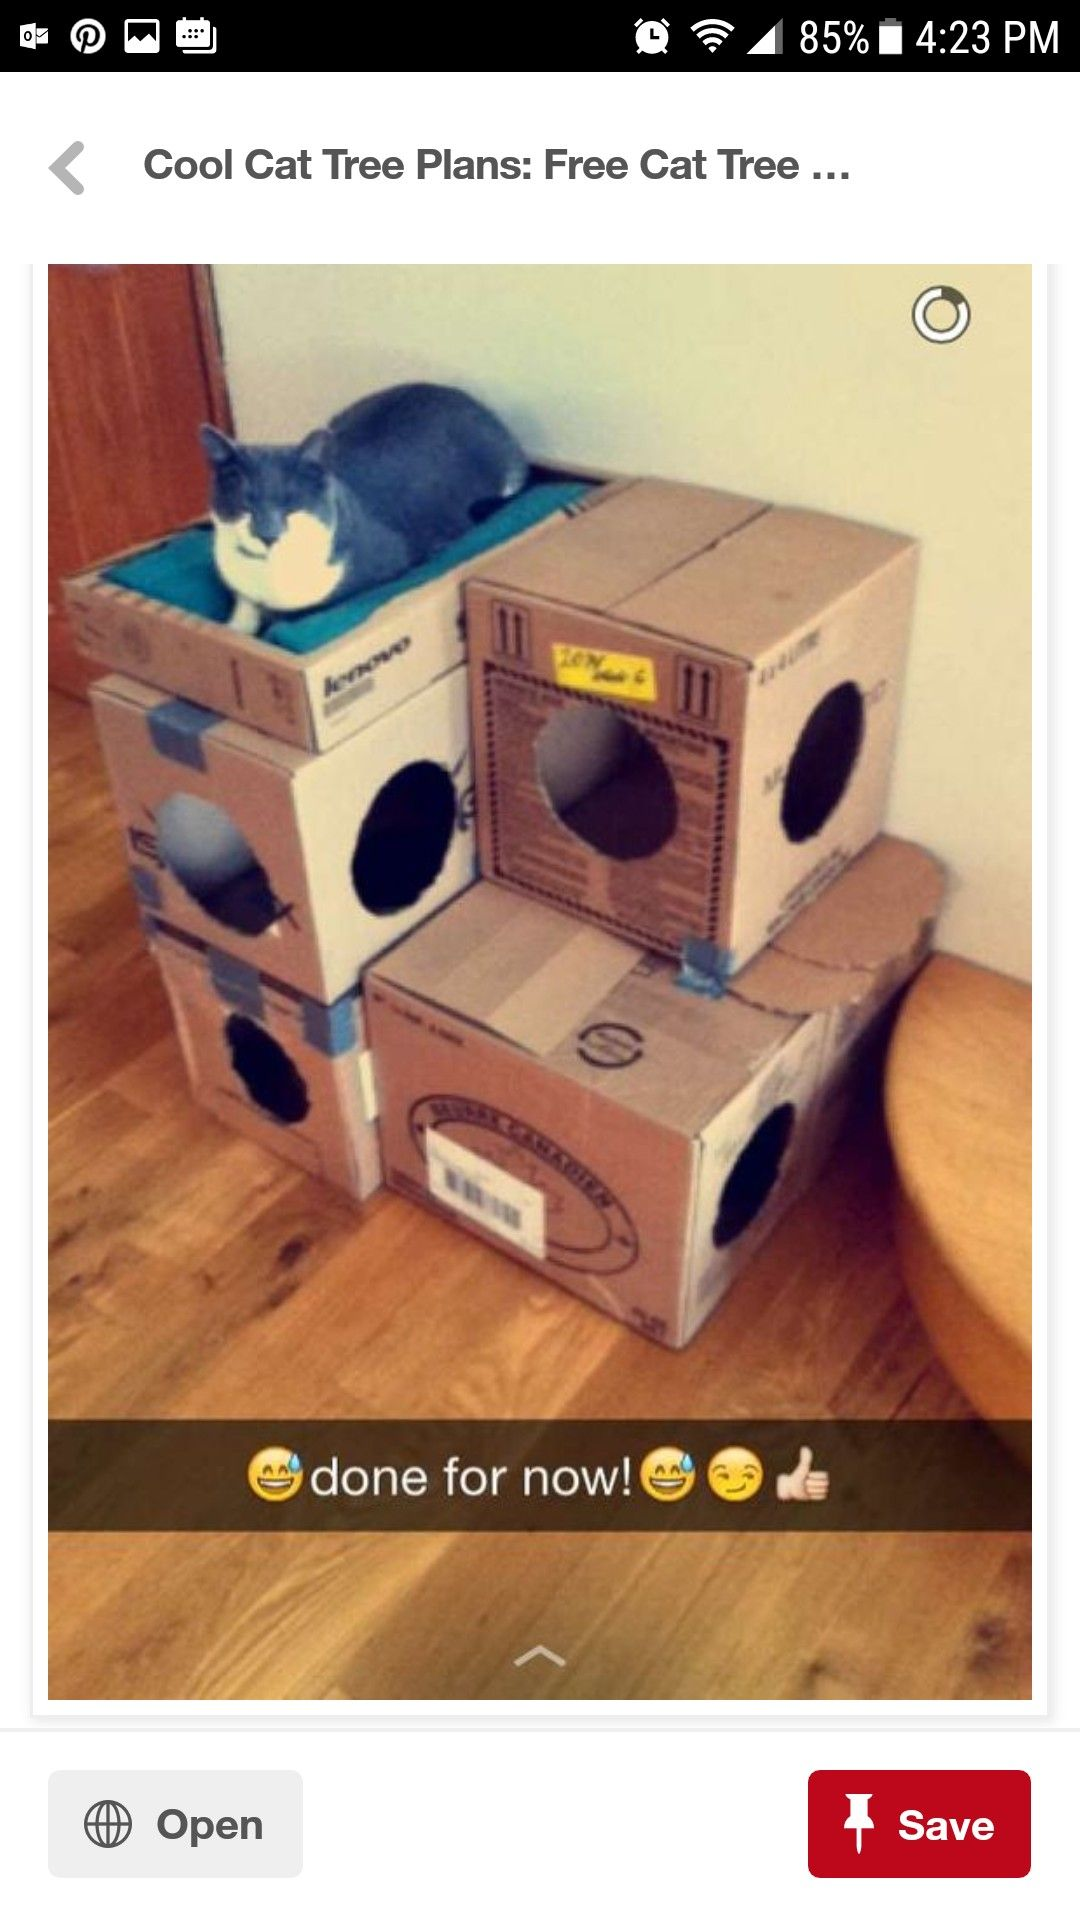 cool cat tree furniture. Free DIY Cat Tree Plans To Help You Build A Cool Tree, Condo Or Tower For Your Special Kitty! And Other Stuff Like This House Made Of Furniture R